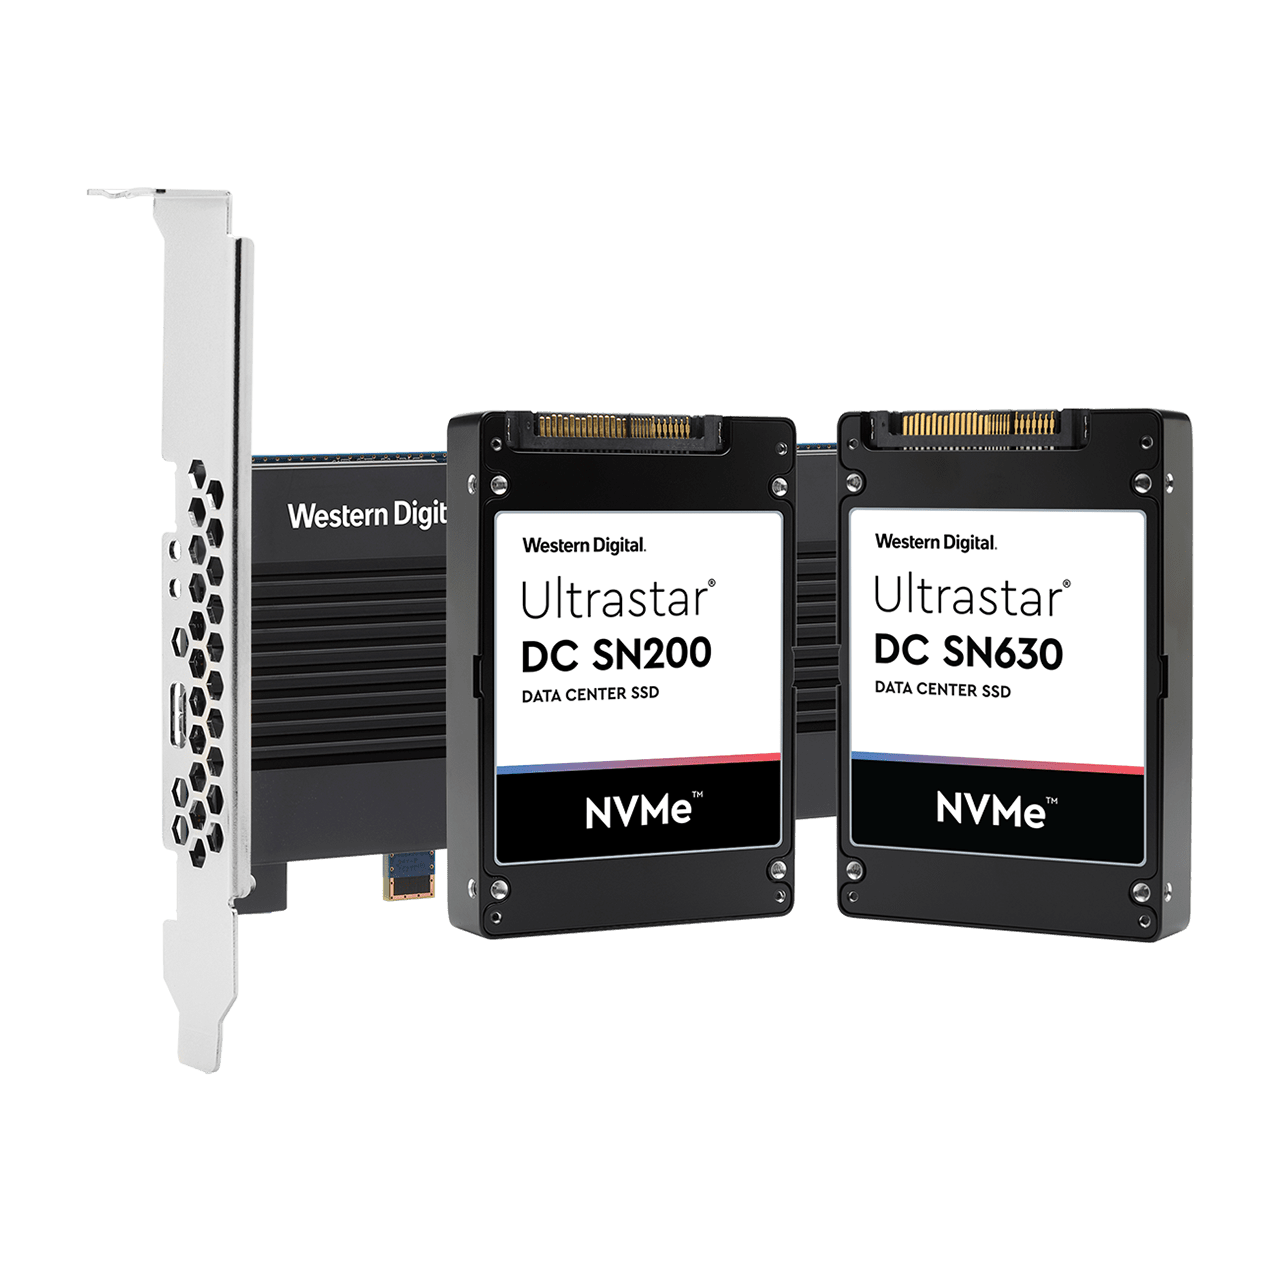 featured-product-hero-image-ultrastar-nvme-western-digital